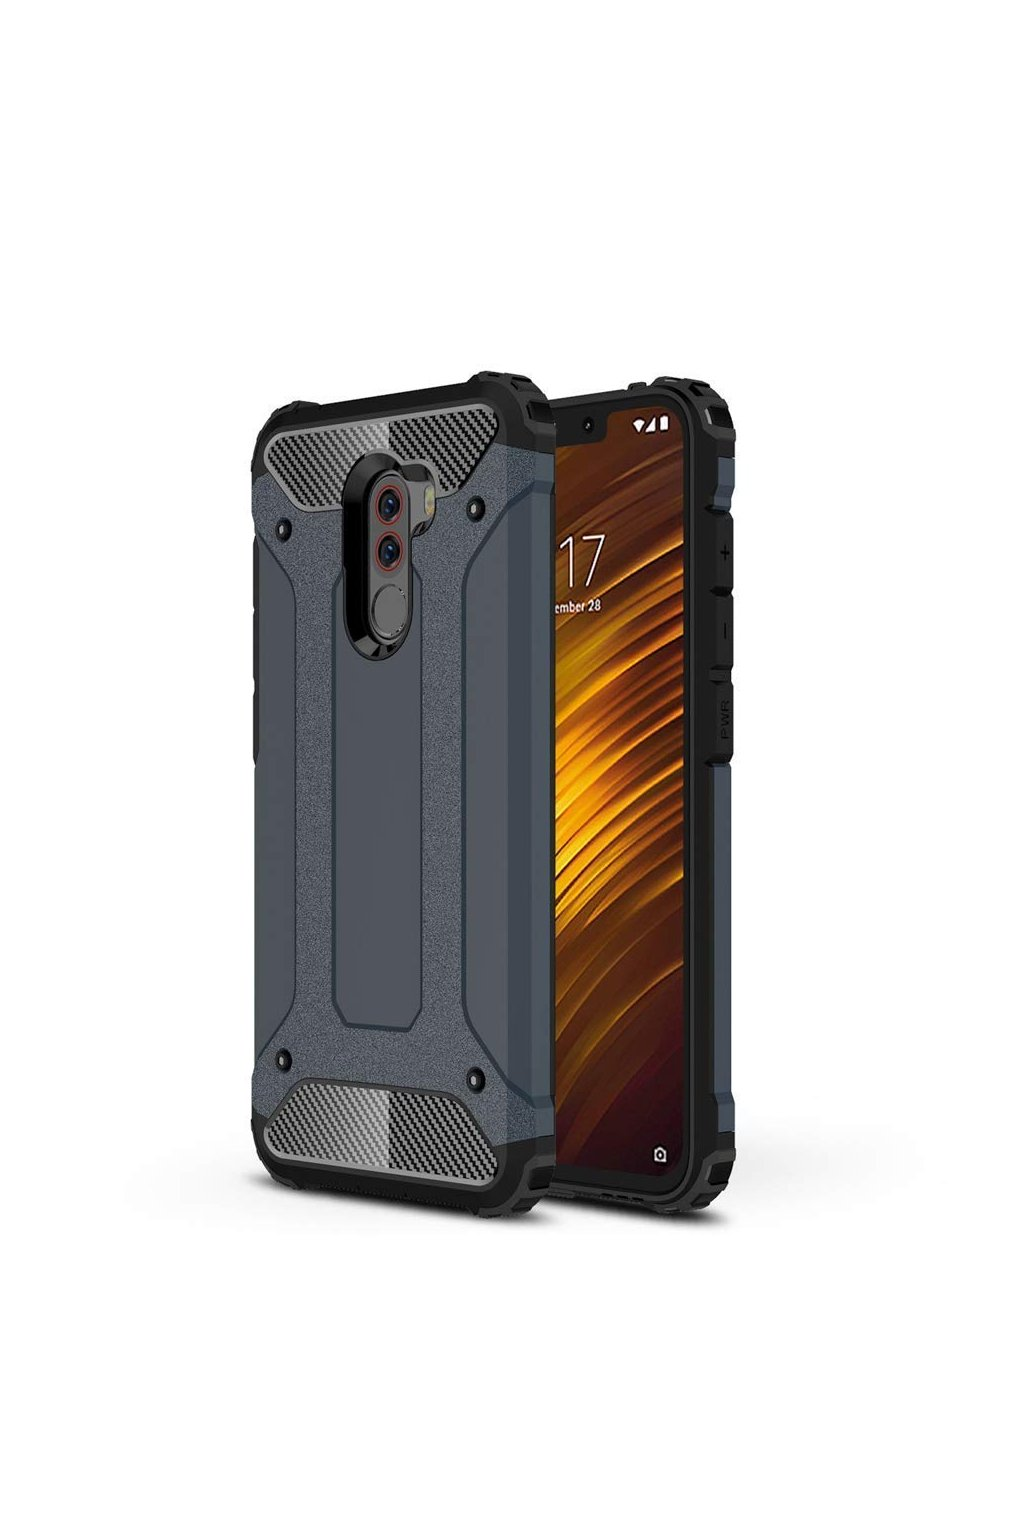 eng pl Hybrid Armor Case Tough Rugged Cover for Xiaomi Pocophone F1 blue 46249 1